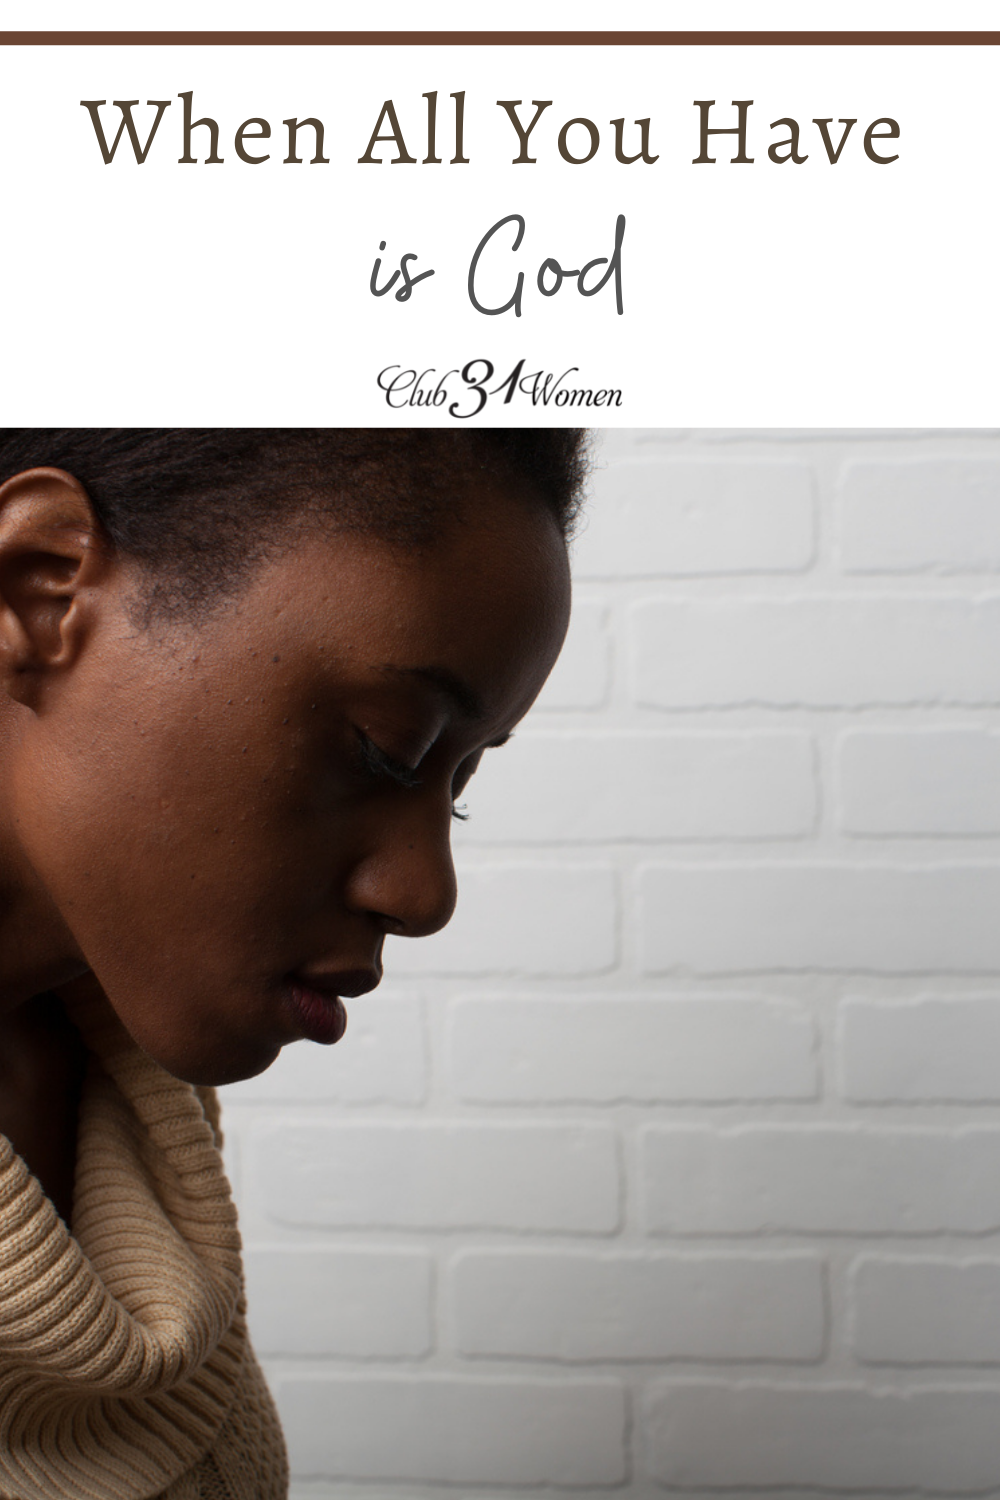 Sometimes we don't recognize God is enough until He is all we have. God wants you to know you are not alone in your darkest hour. via @Club31Women